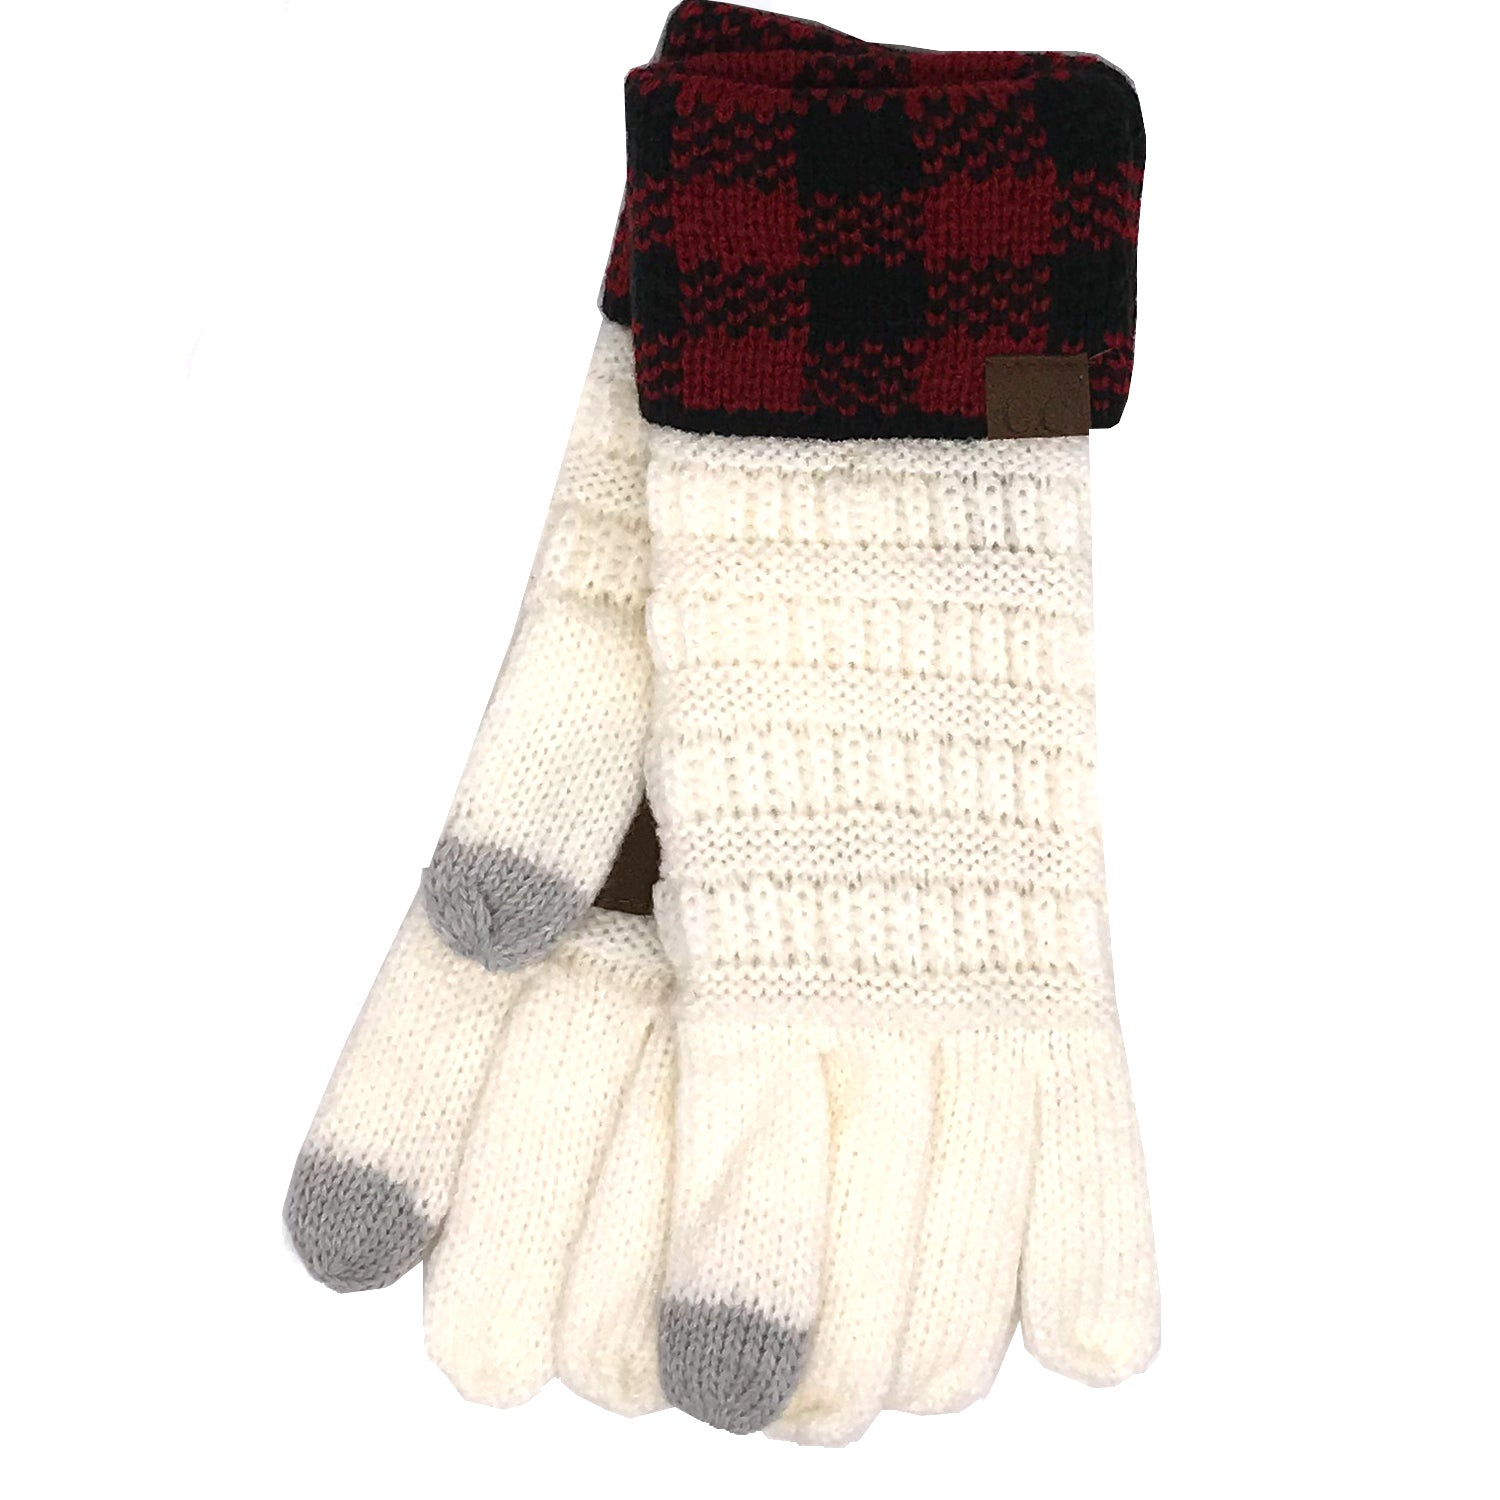 G-17 GLOVE BUFFALO PLAID CUFF IVORY RED/BLACK